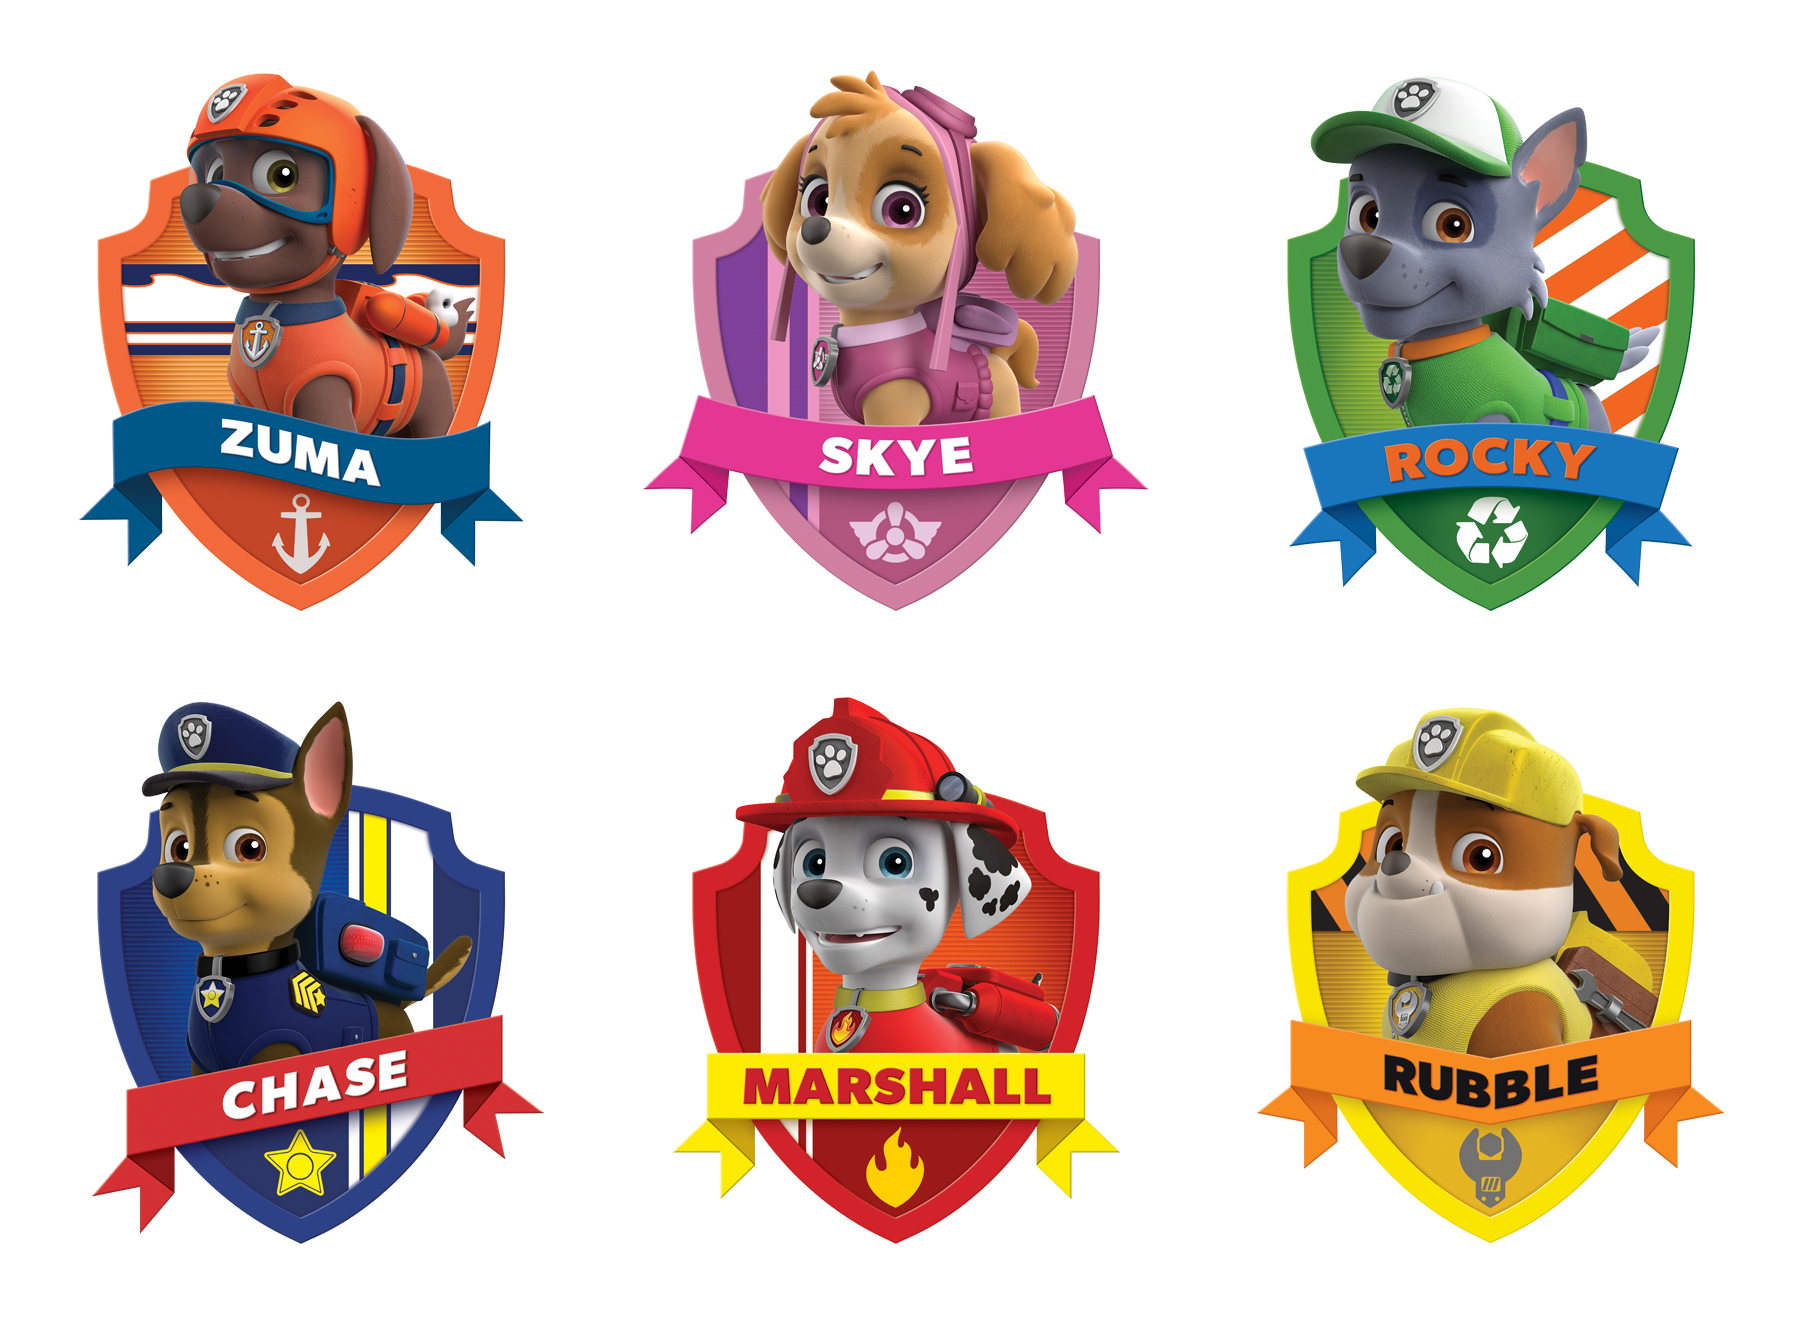 Paw Patrol Style Guide Design - Thumb 5